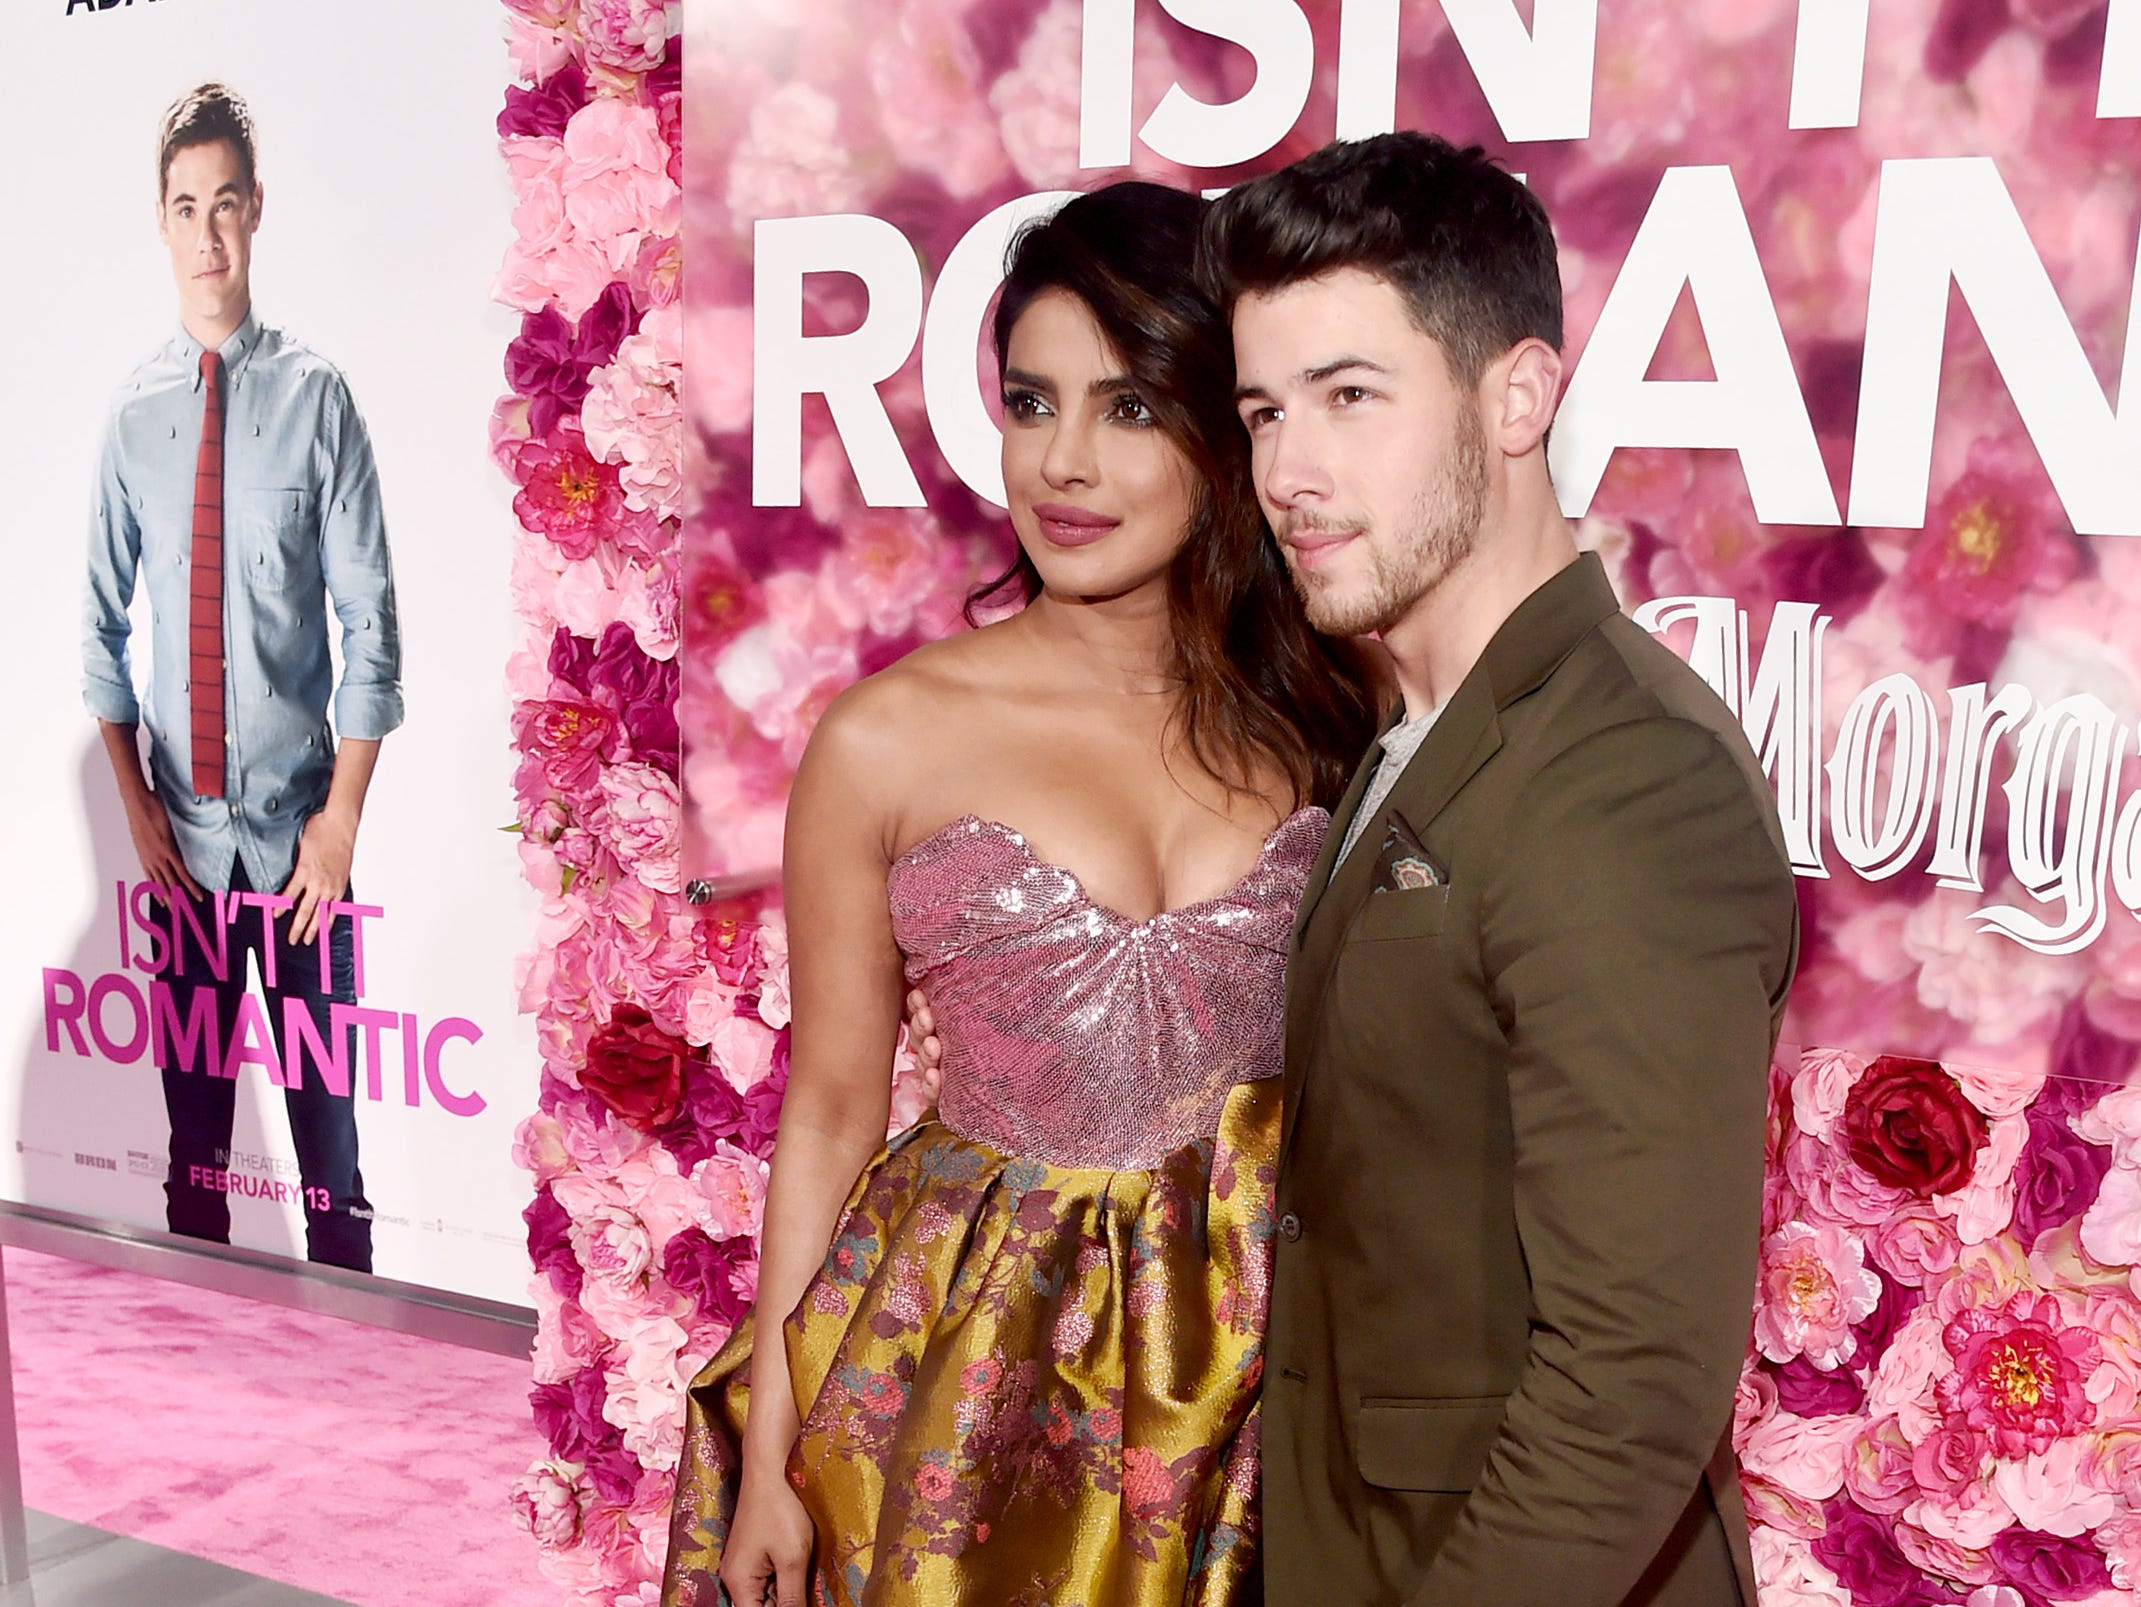 "LOS ANGELES, CALIFORNIA - FEBRUARY 11: (L-R) Priyanka Chopra and  Nick Jonas attend the premiere of Warner Bros. Pictures' ""Isn't It Romantic"" at The Theatre at Ace Hotel on February 11, 2019 in Los Angeles, California. (Photo by Alberto E. Rodriguez/Getty Images) ORG XMIT: 775292839 ORIG FILE ID: 1129043356"